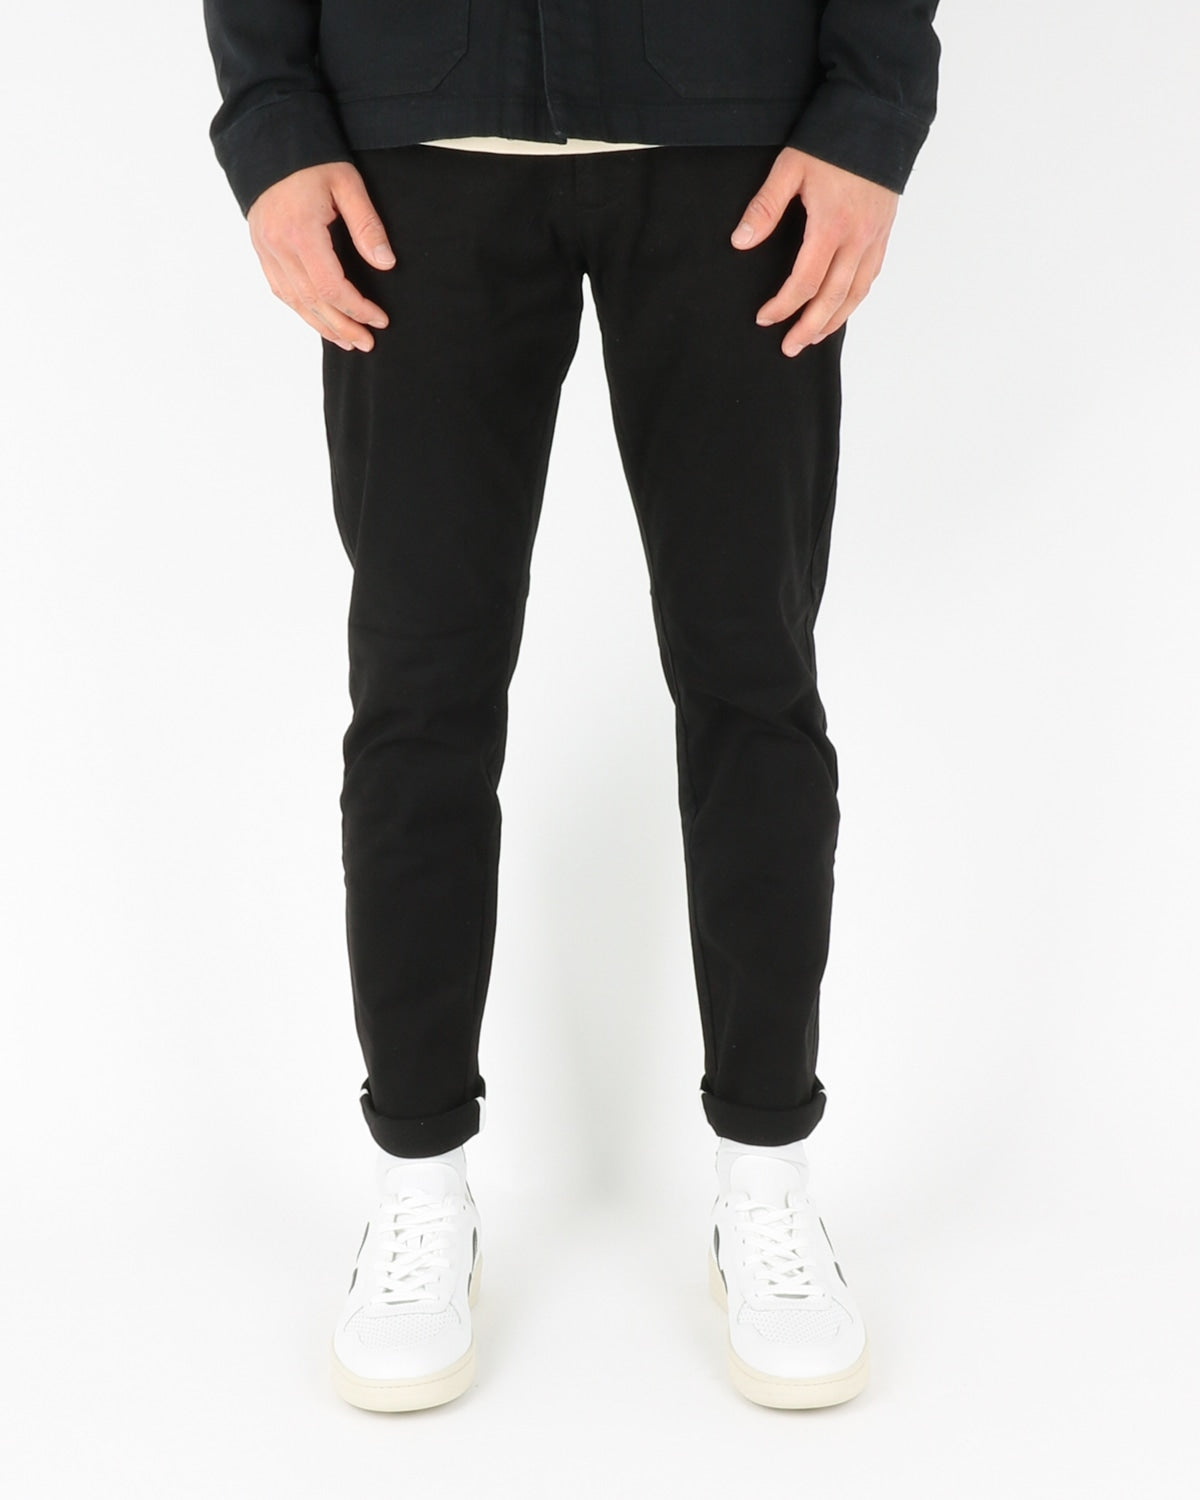 legends_century trousers_black_1_3